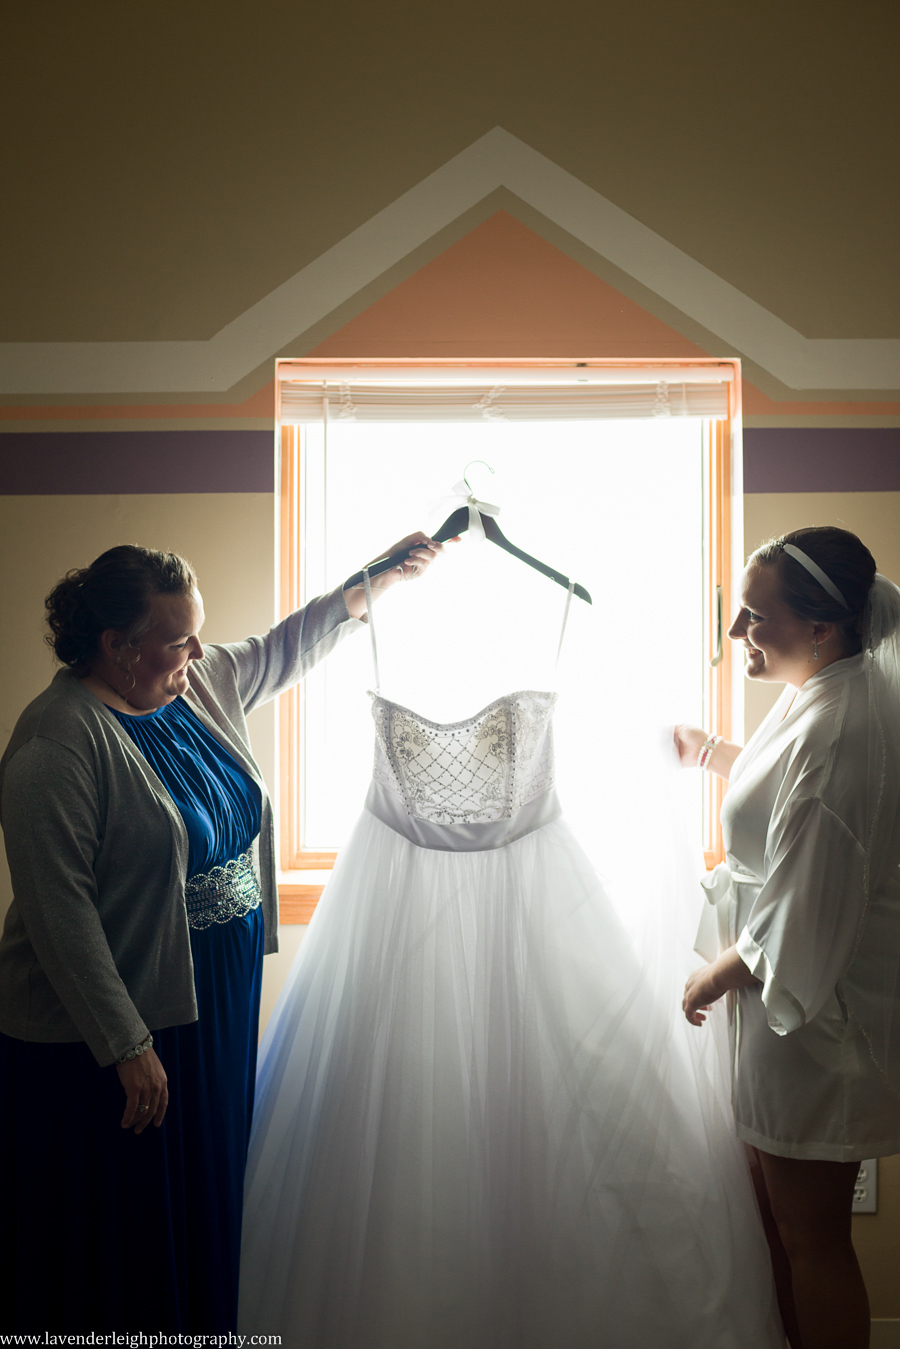 Bride and Mother|Getting Ready | The Crystal Room| Harvest Community Church | Winter Wedding| Pittsburgh Wedding Photographer | Pittsburgh Wedding Photographers | Lavender Leigh Photography | Blog